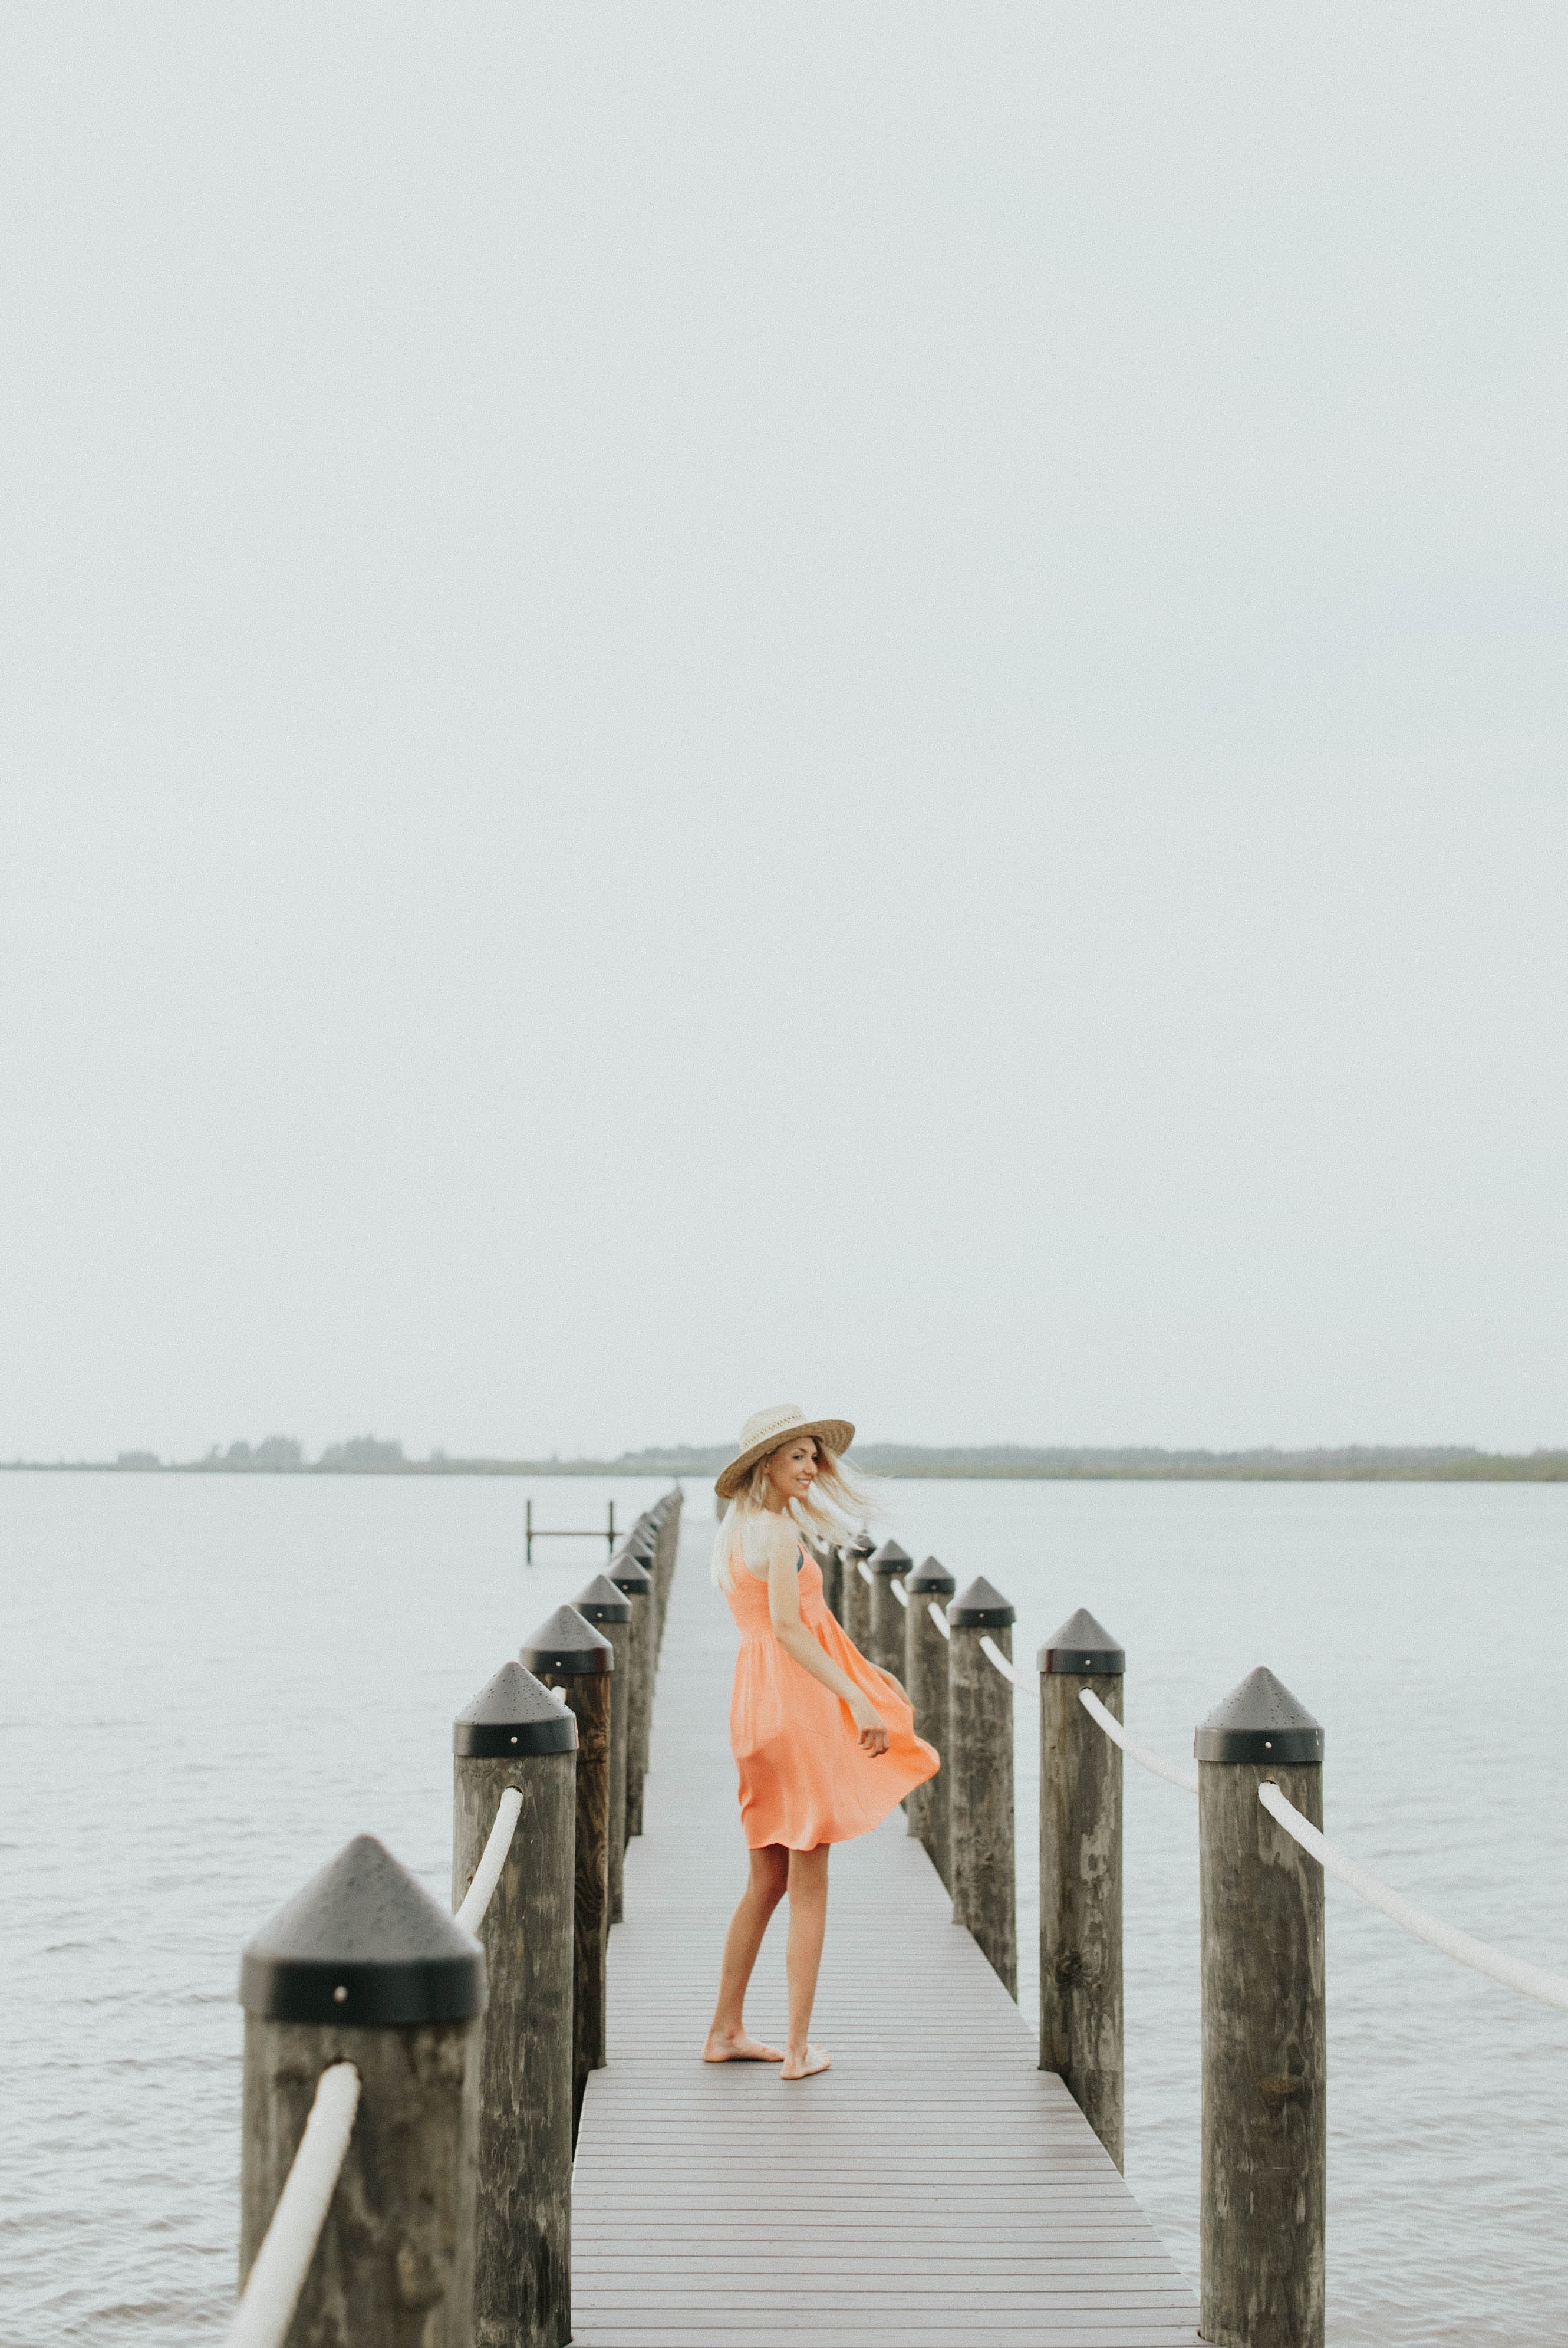 A smiling young woman in a hat and a dress on a wooden pier